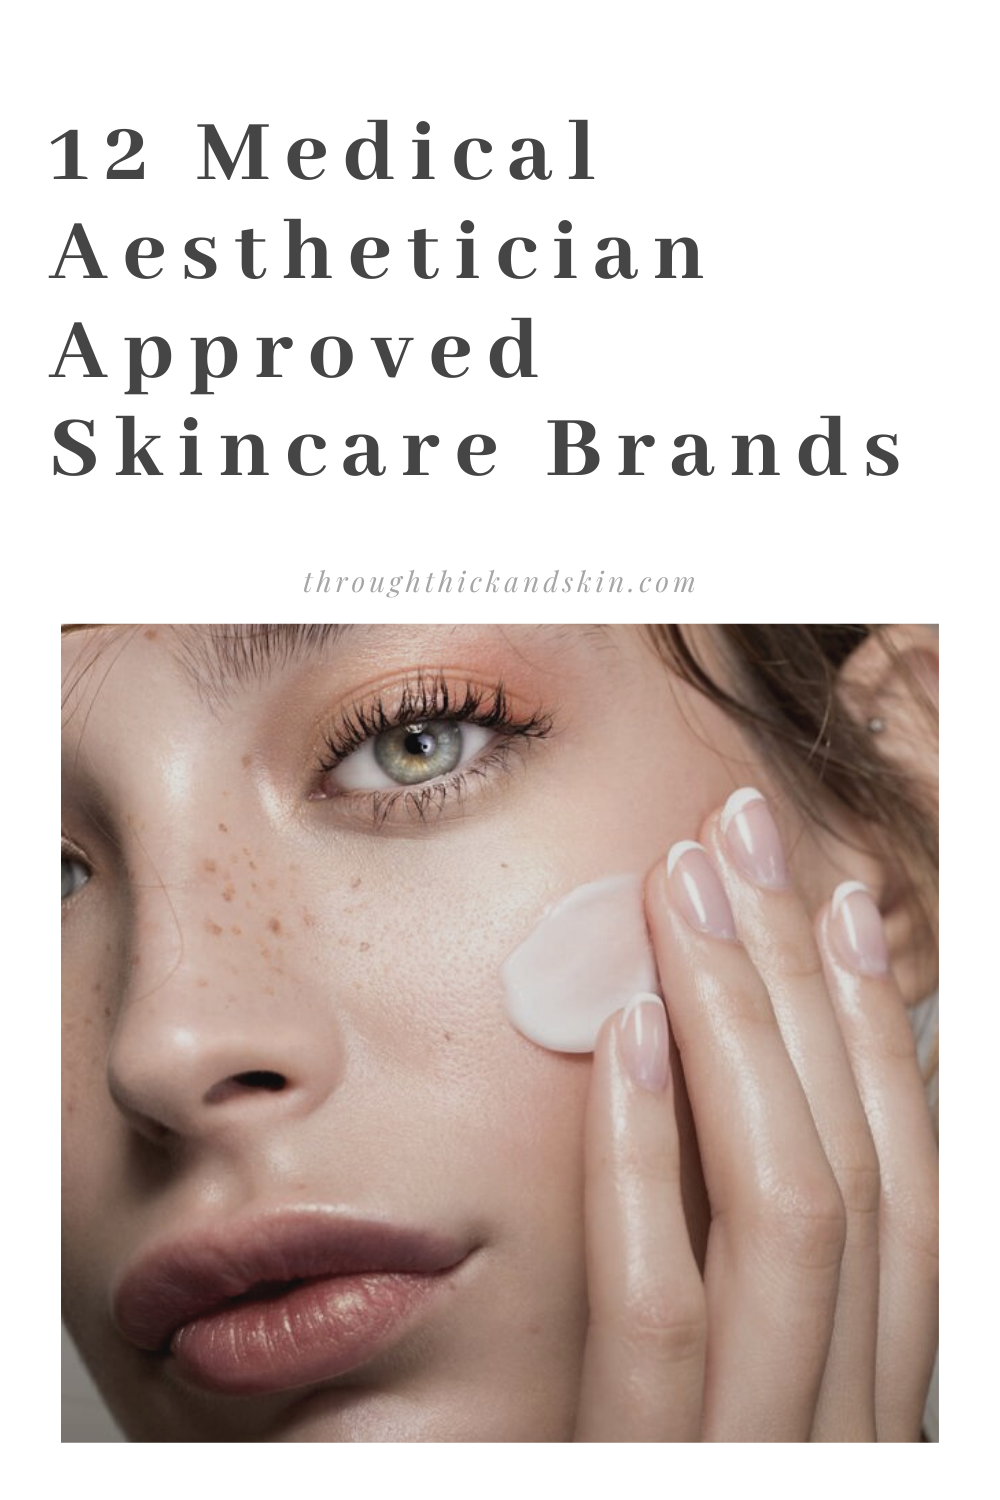 Here S My Latest List Of The 12 Skin Care Brands Approved By Yours Truly A Licensed Medical Aesthetician Or In 2020 Medical Aesthetician Image Skincare Aesthetician